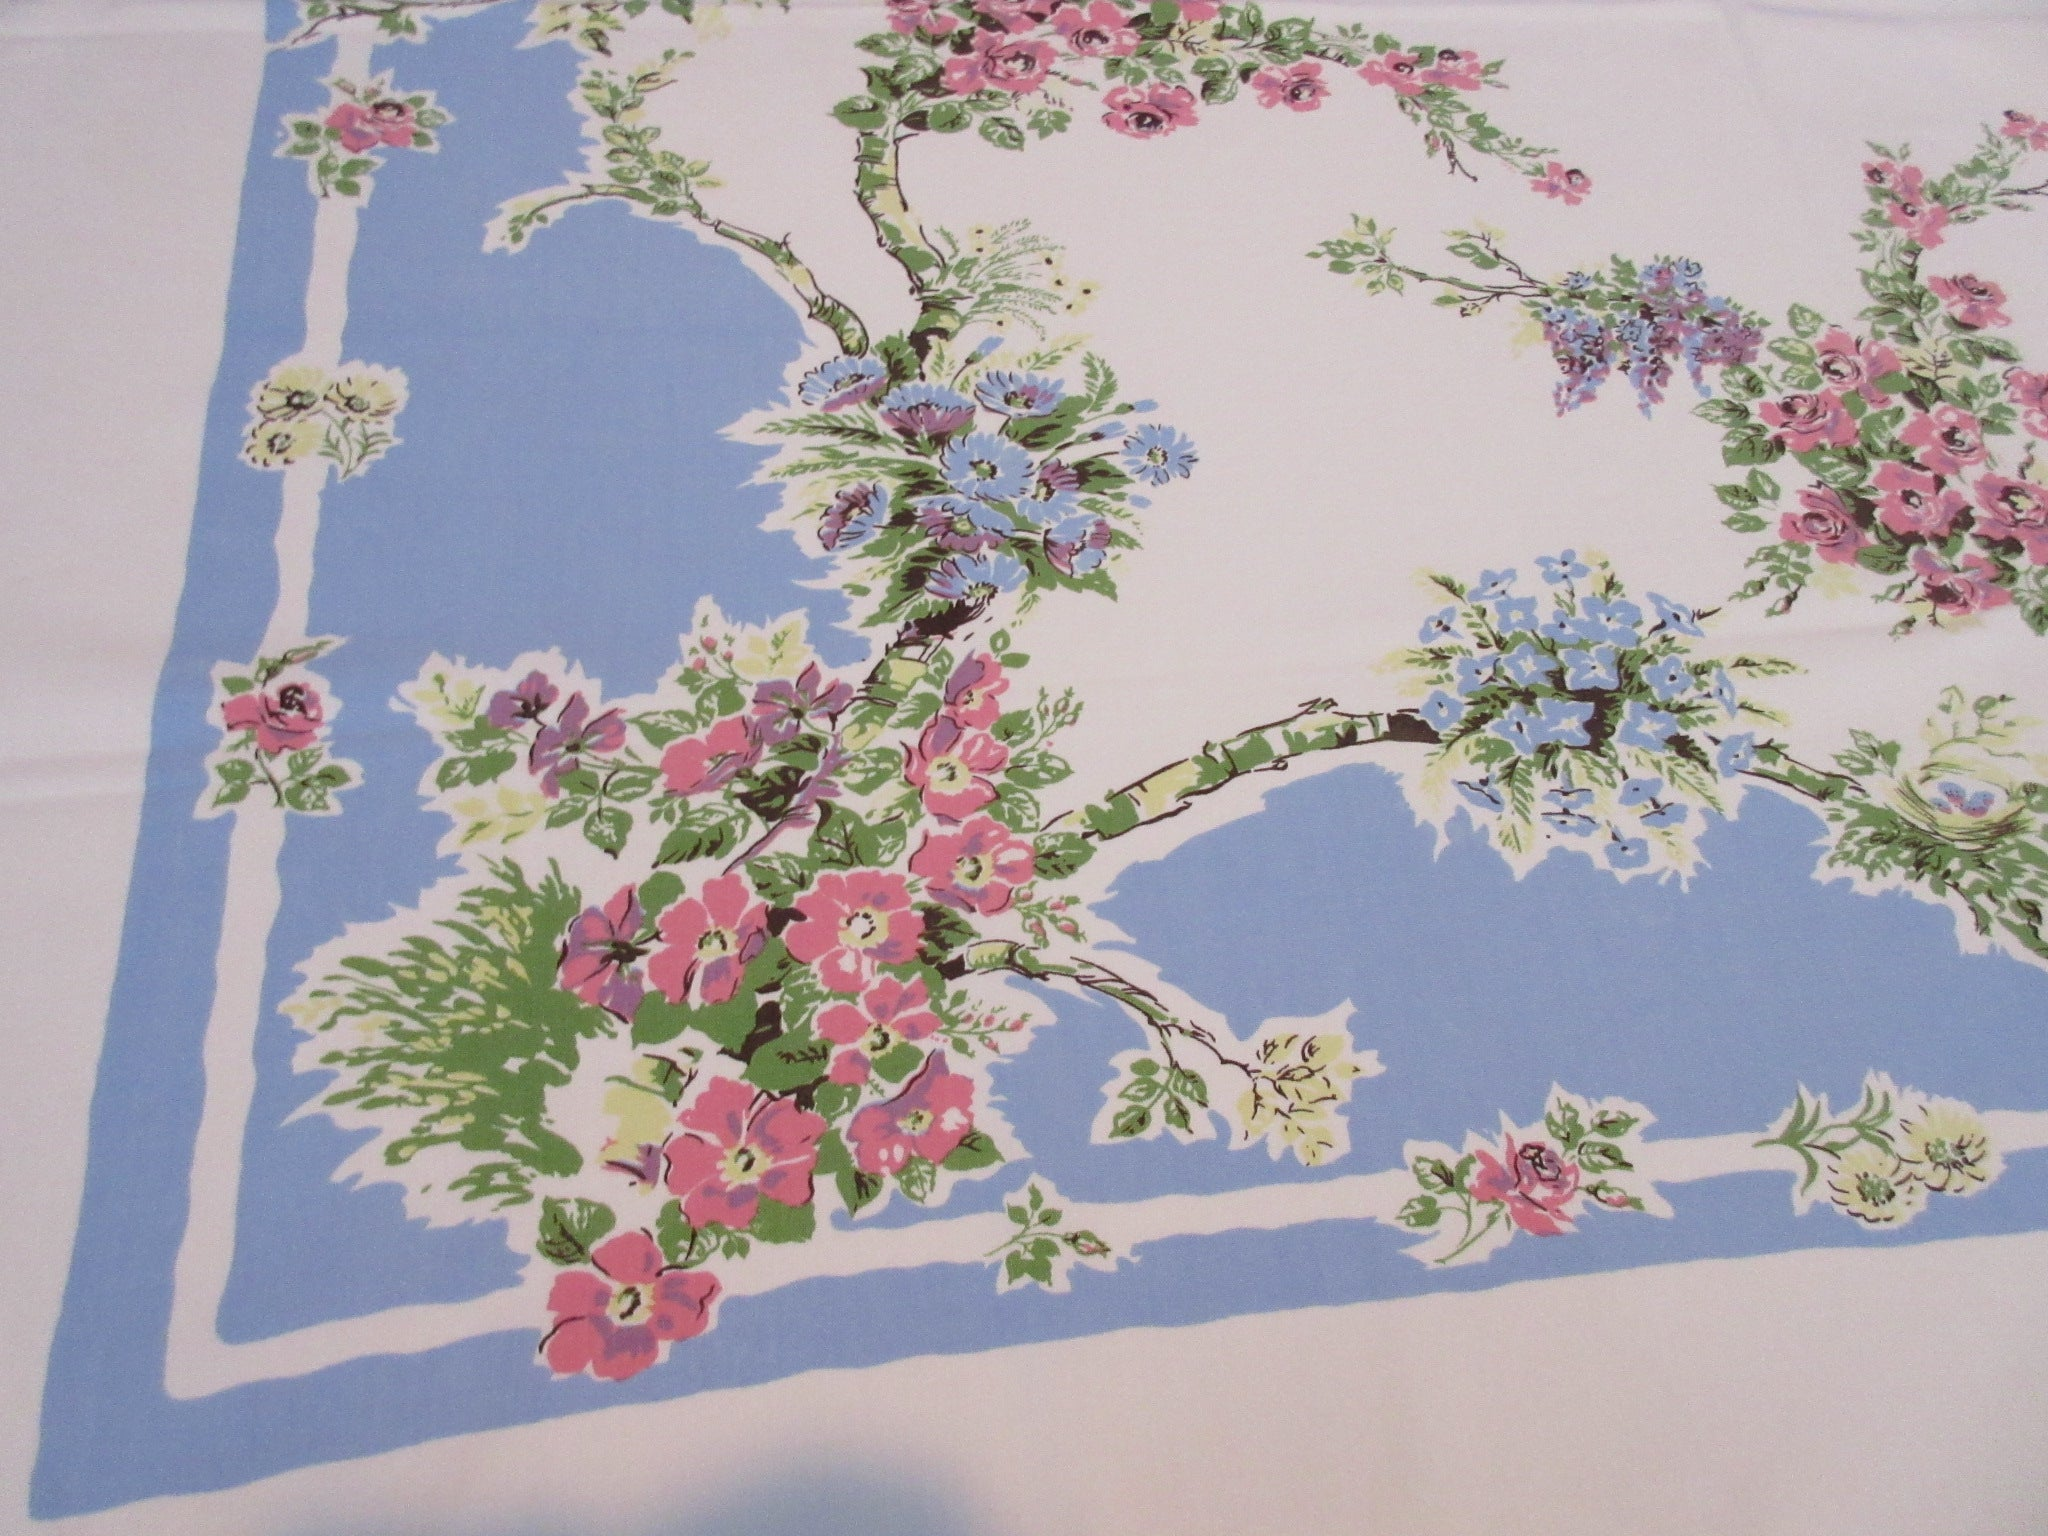 Pastel Roses Birds Nests on Blue Floral Vintage Printed Tablecloth (52 X 45)